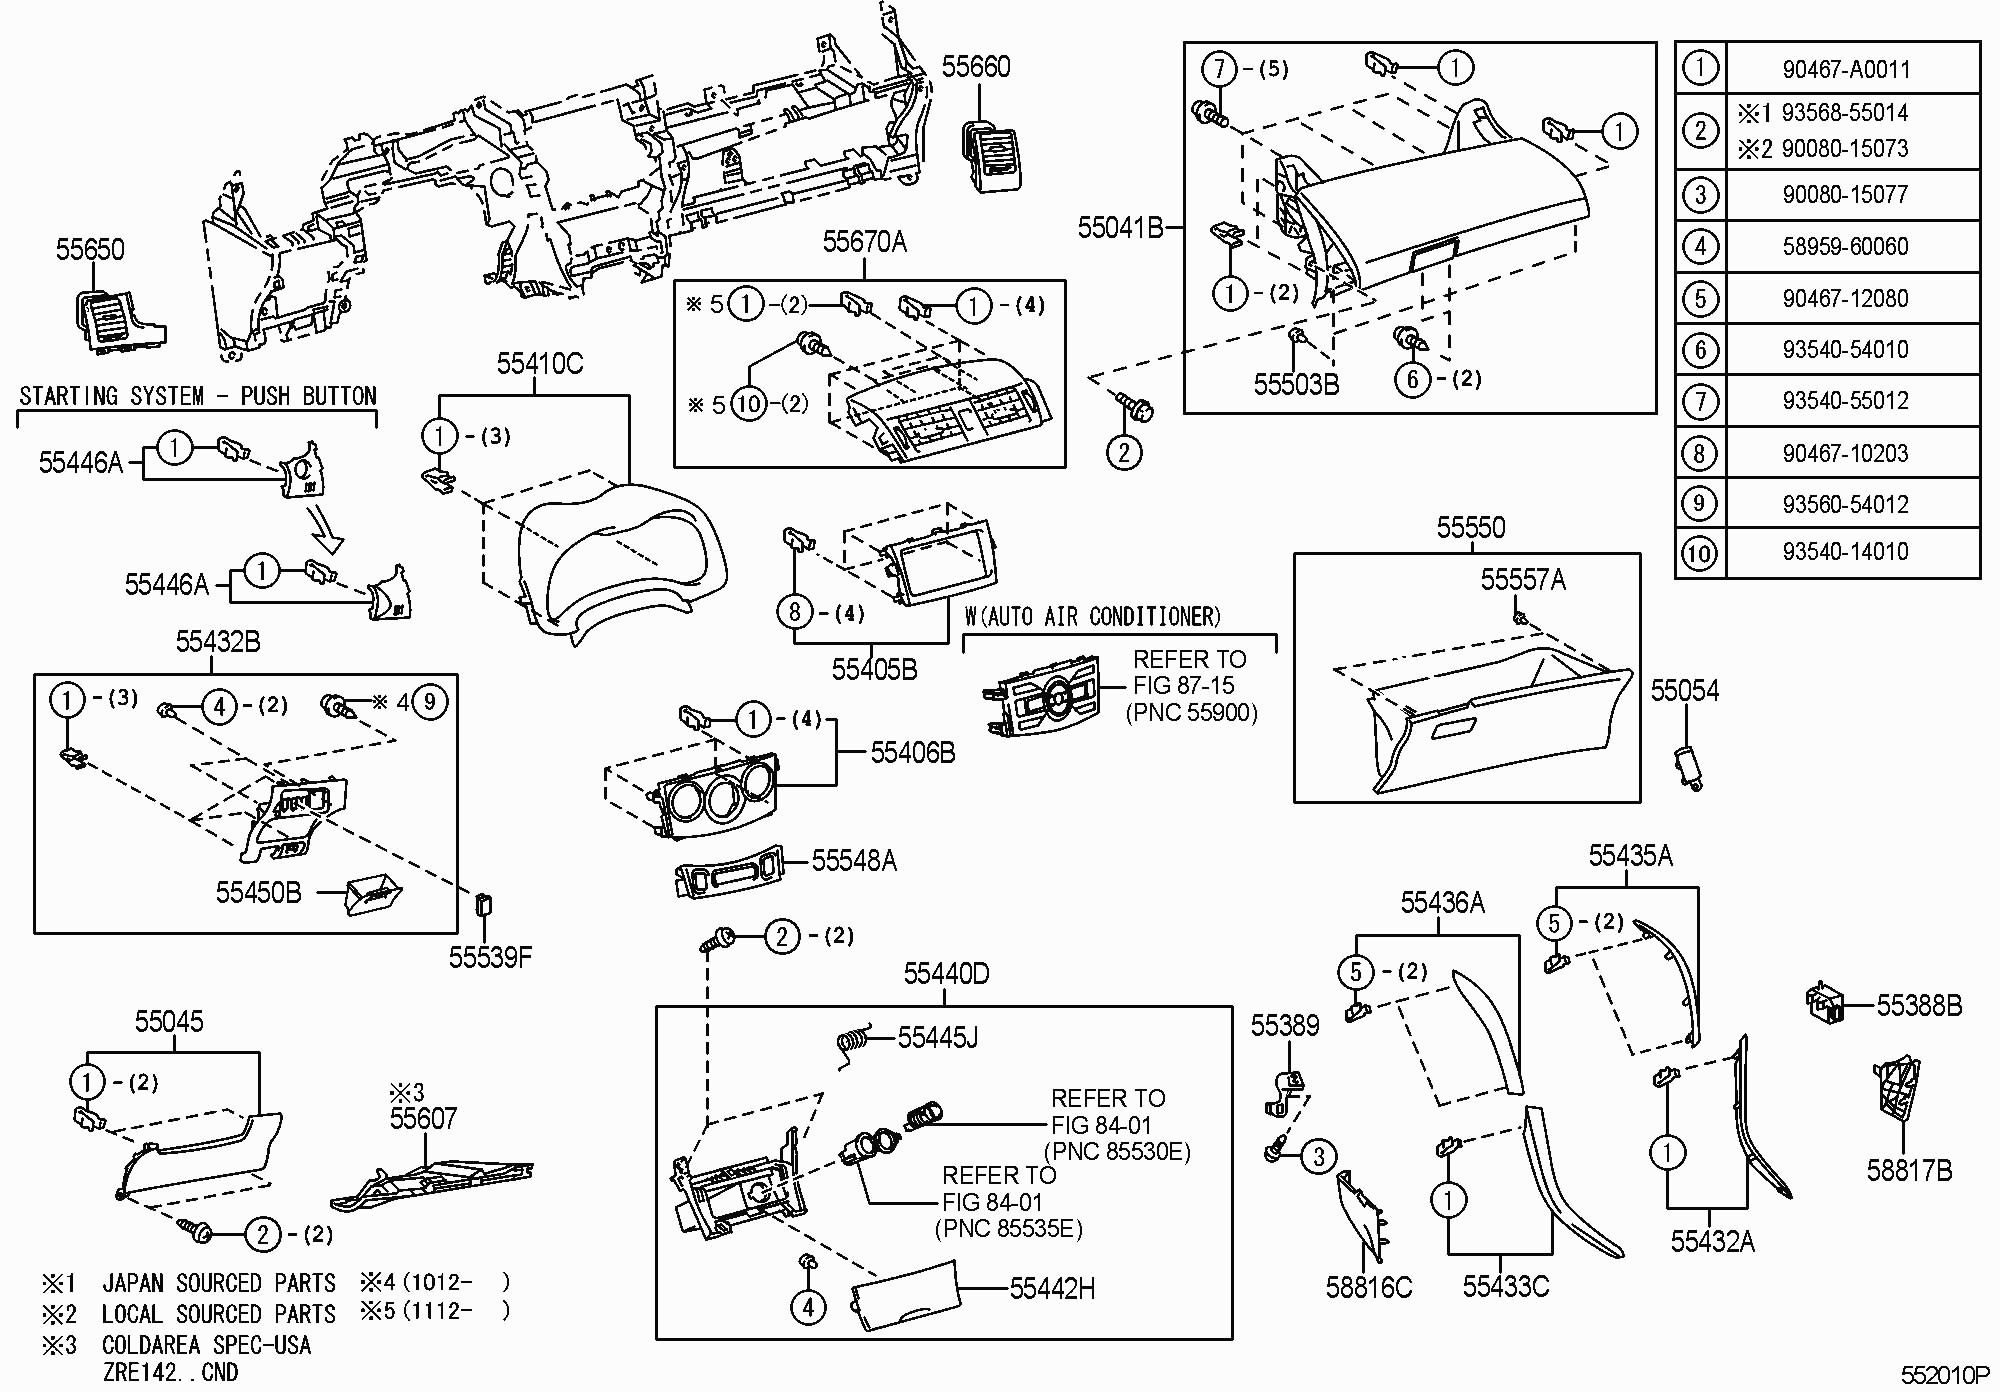 2004 toyota Sequoia Parts Diagram 2004 toyota Tundra